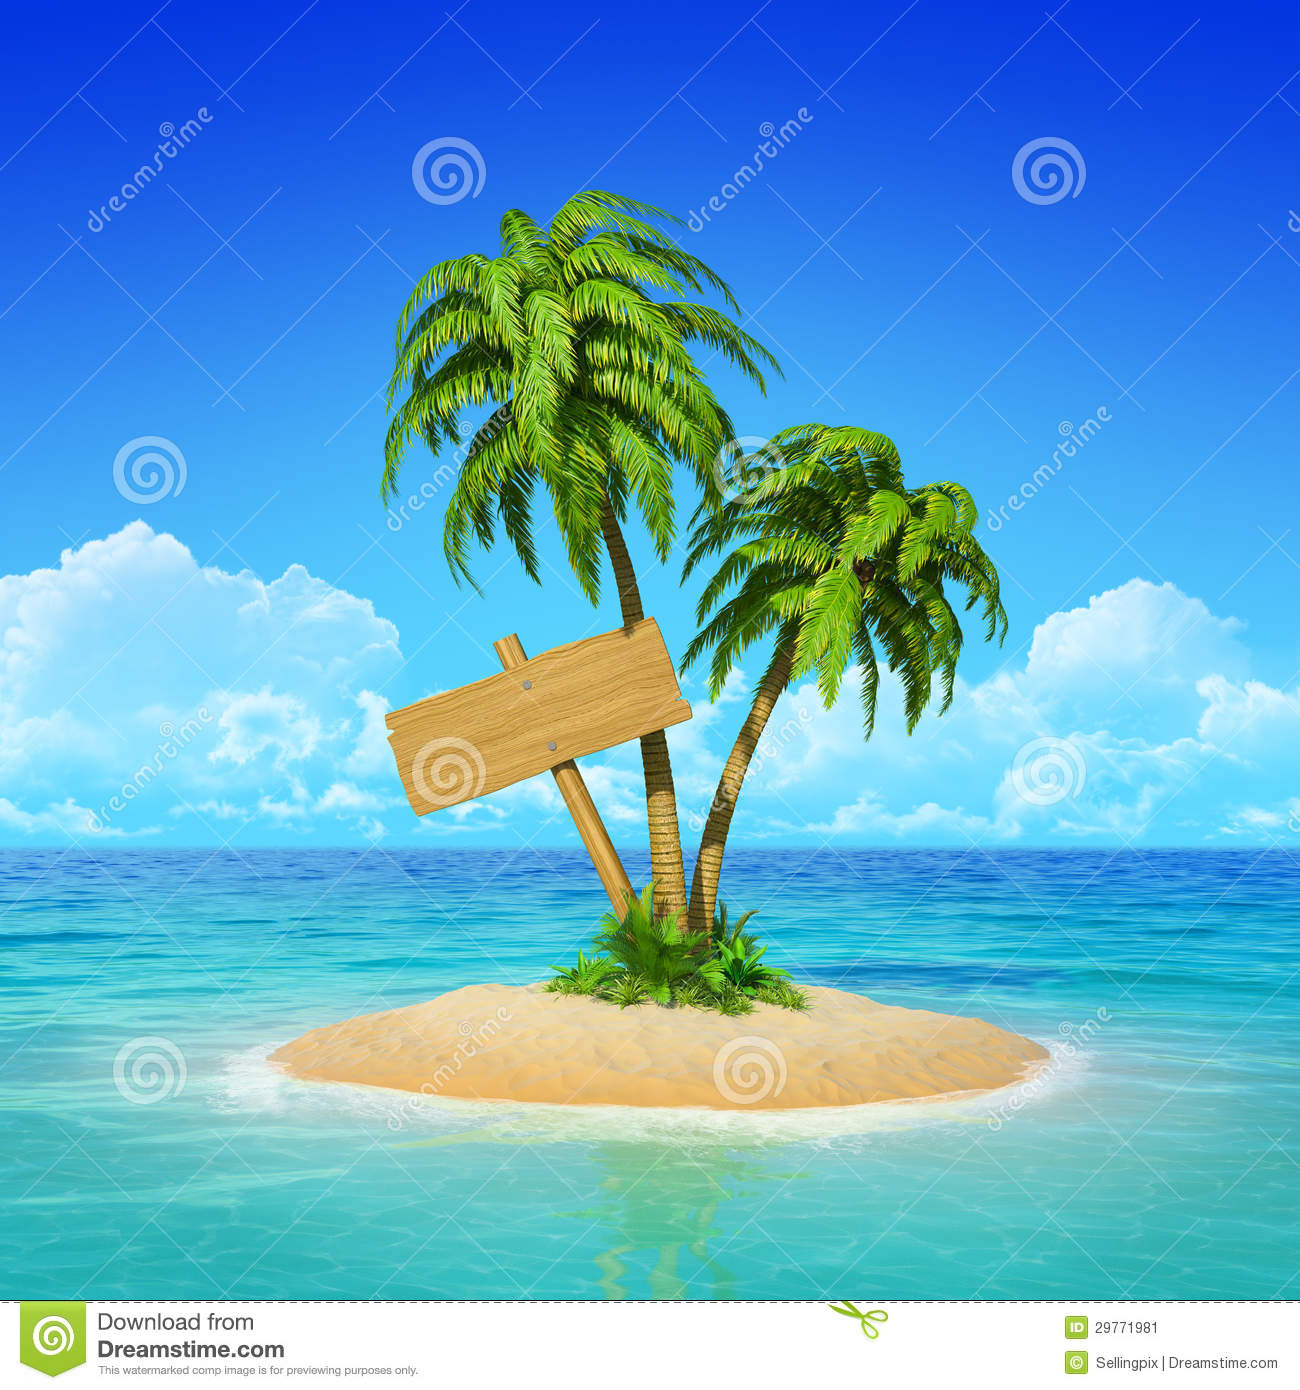 Palm Tree Island: Wooden Signpost On Tropical Island With Palms. Stock Image